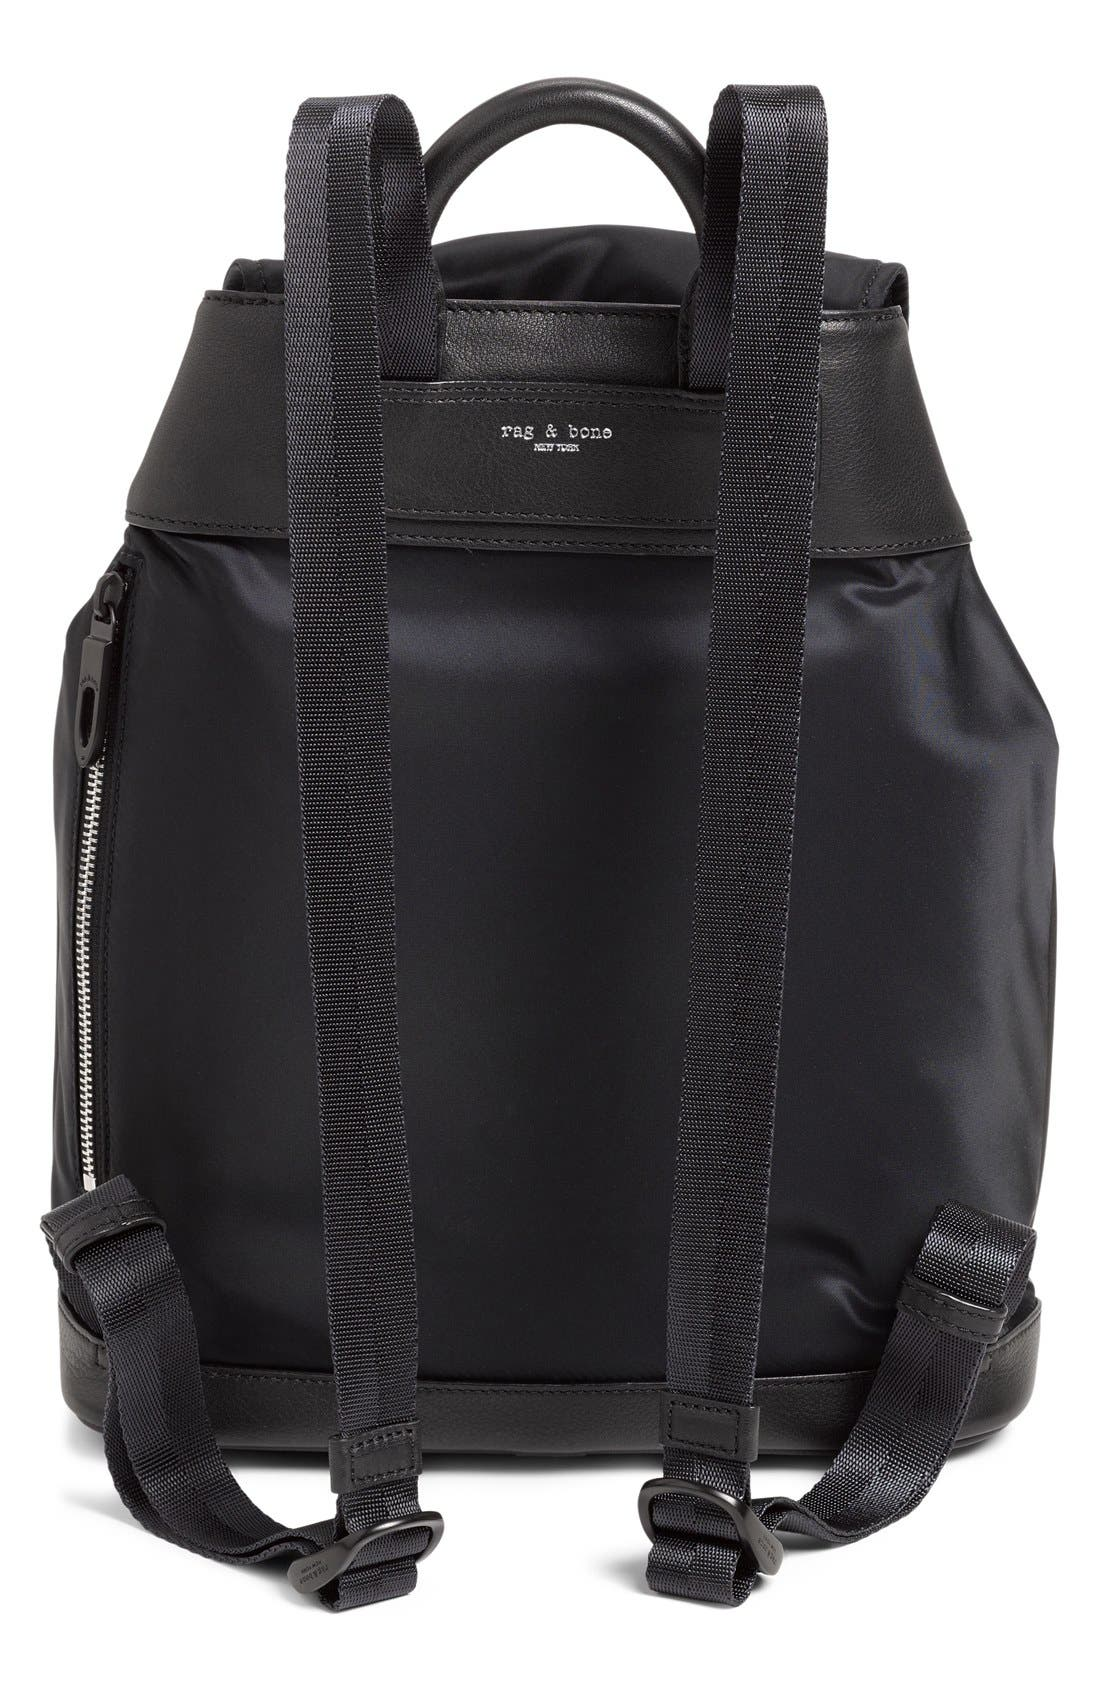 RAG & BONE,                             'Pilot' Nylon Backpack,                             Alternate thumbnail 3, color,                             002